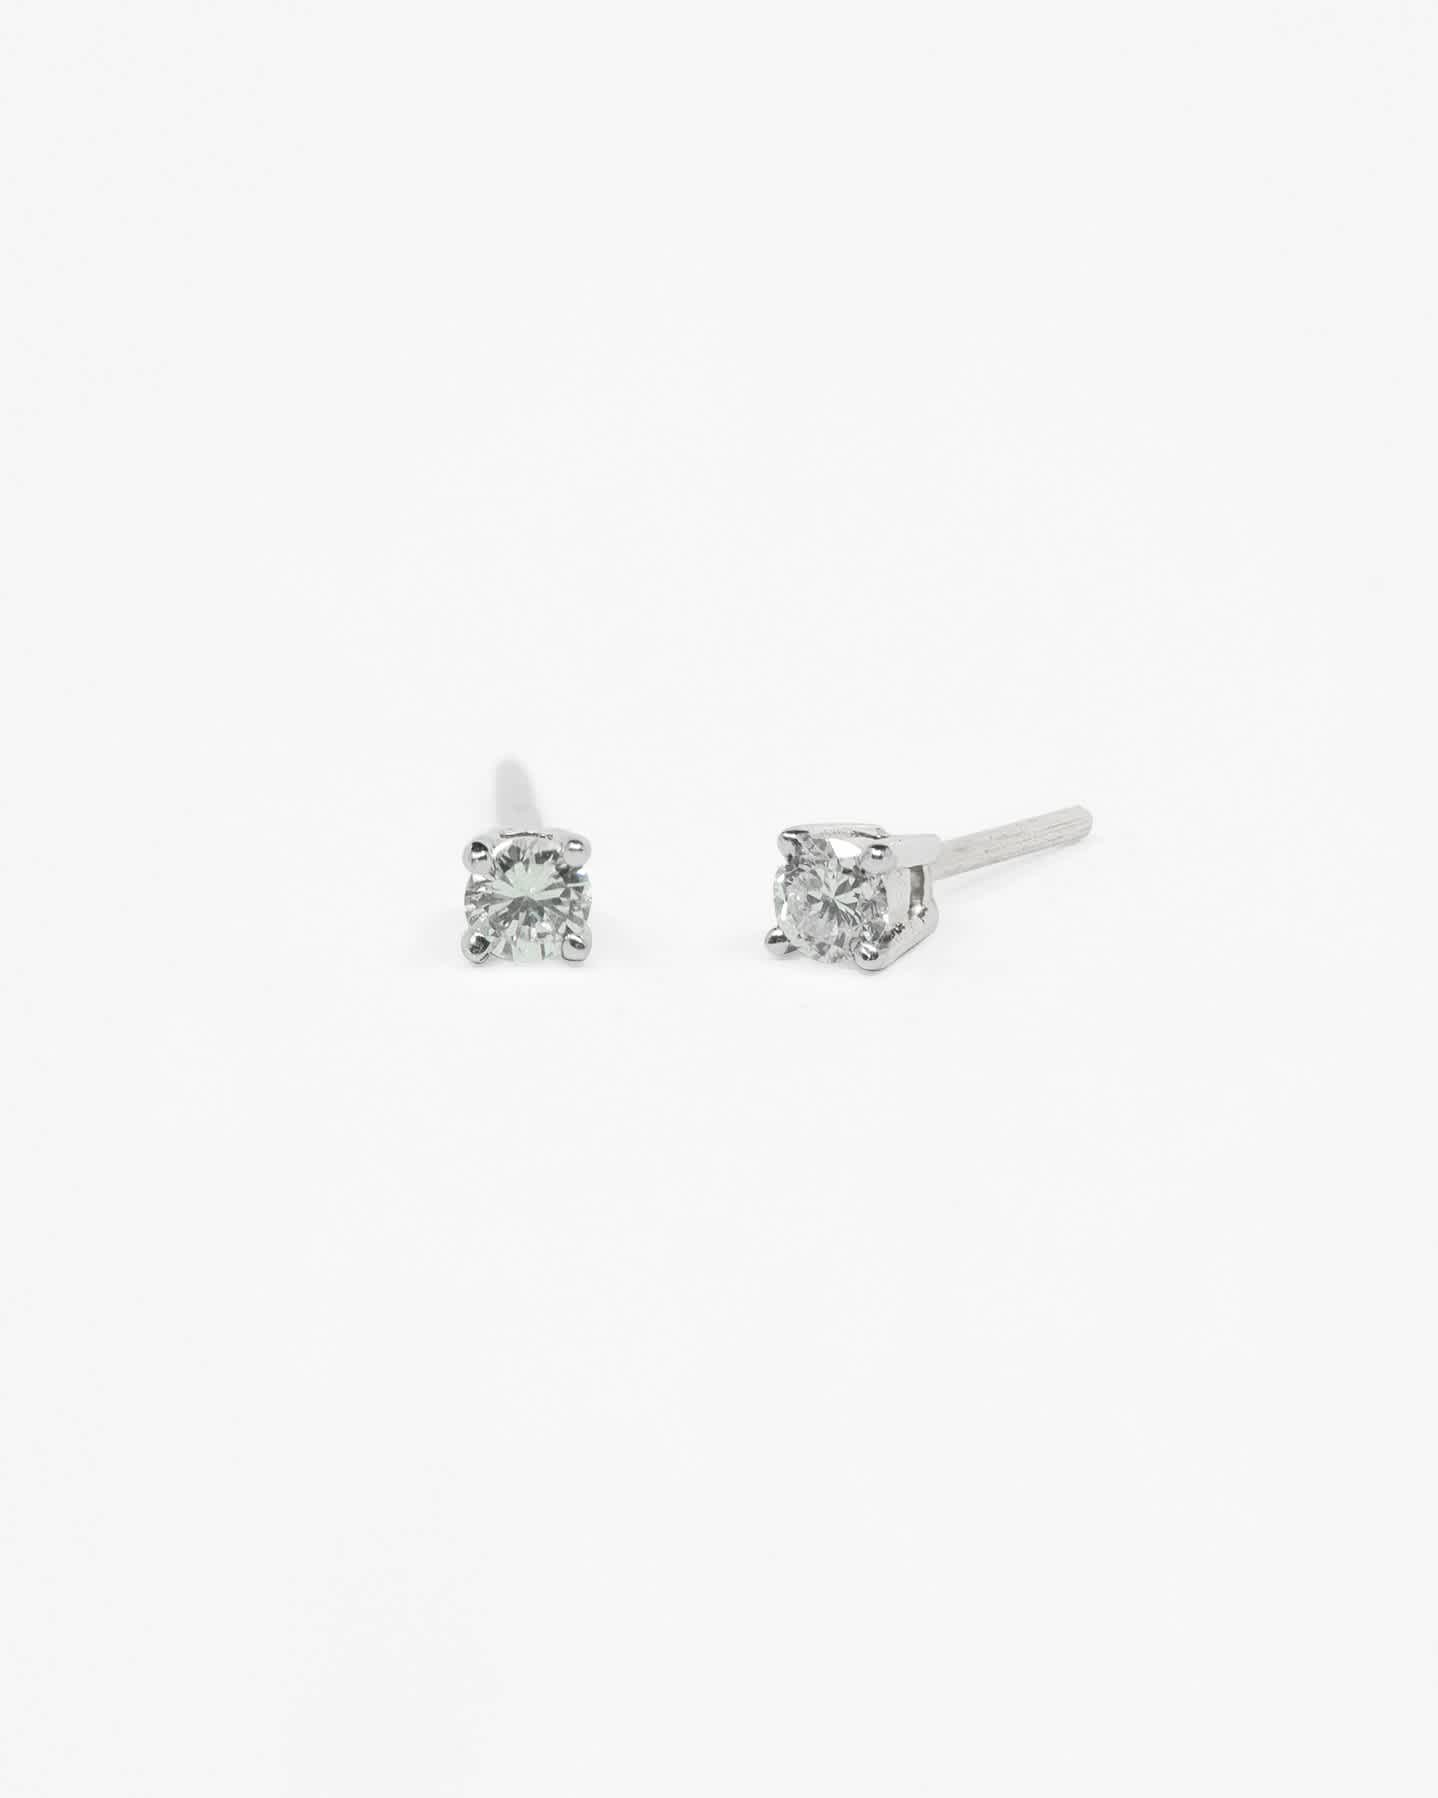 Pair With - Classic Diamond Stud Earrings 0.12 carat - Yellow Gold